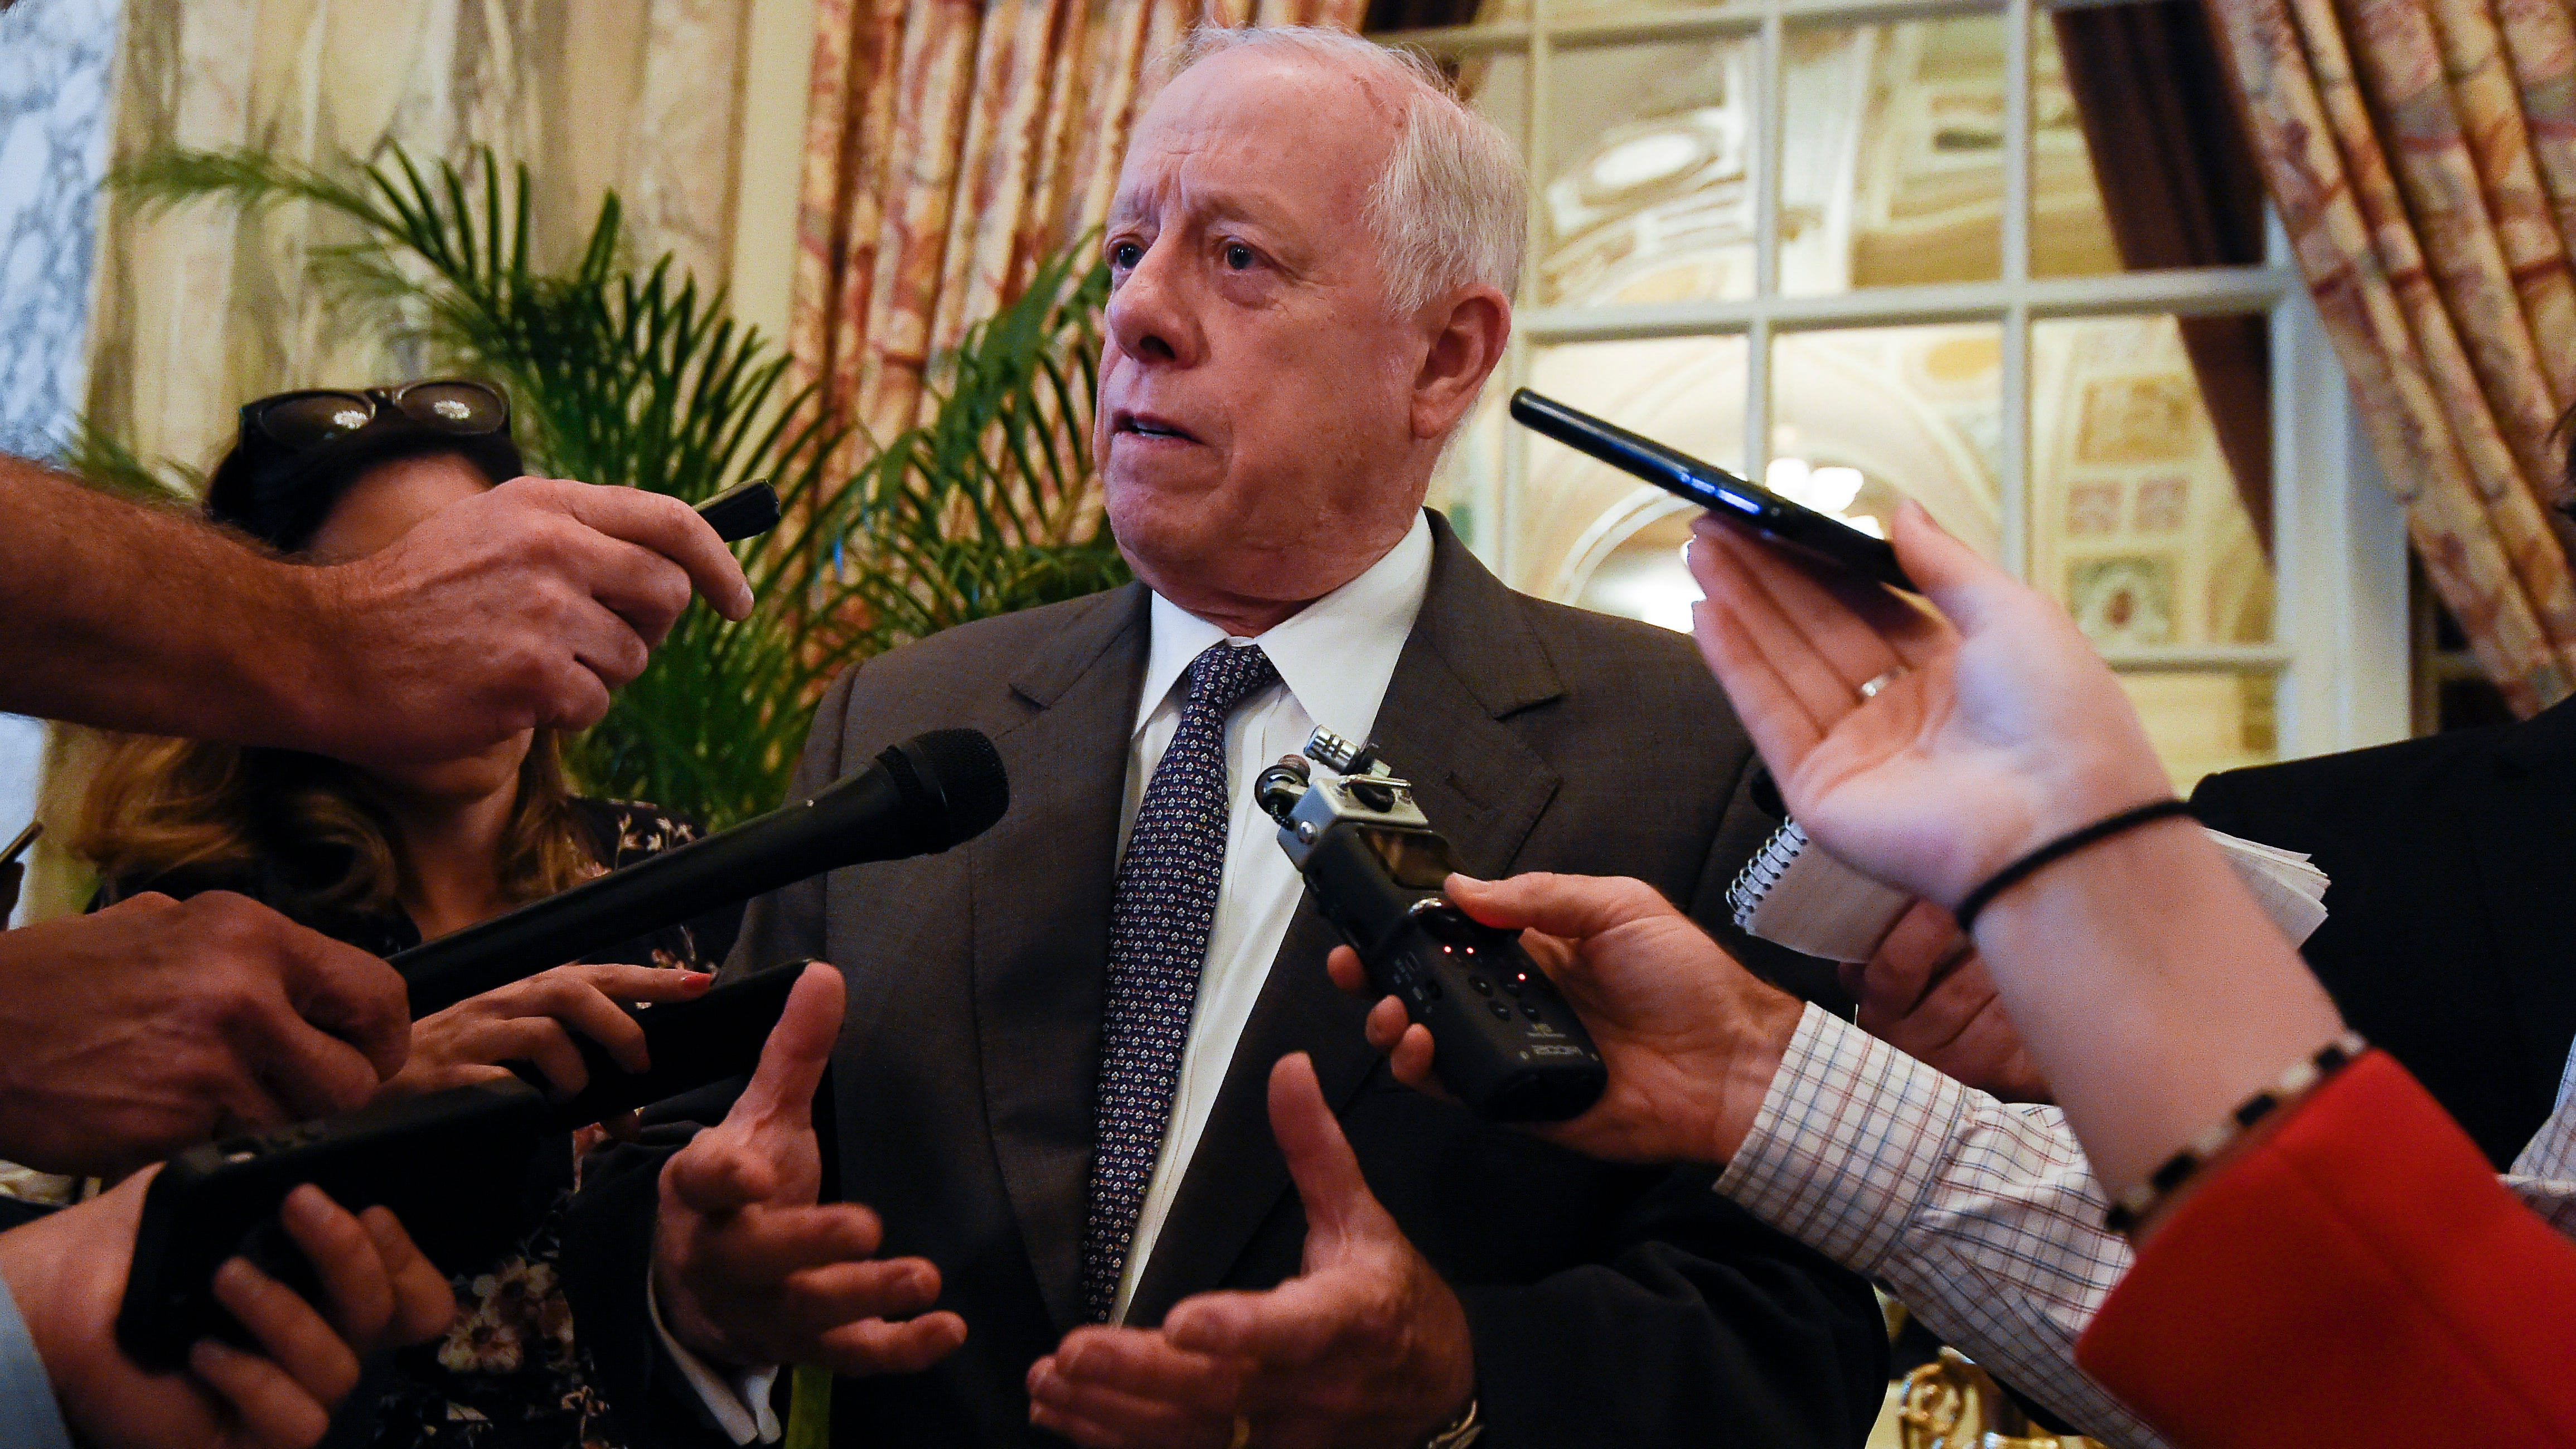 U.S. Senate candidate, former governor Phil Bredesen answers questions from the media after addressing the Healthy Tennessee conference at the Hermitage Hotel  Friday, Aug. 24, 2018, in Nashville, Tenn.